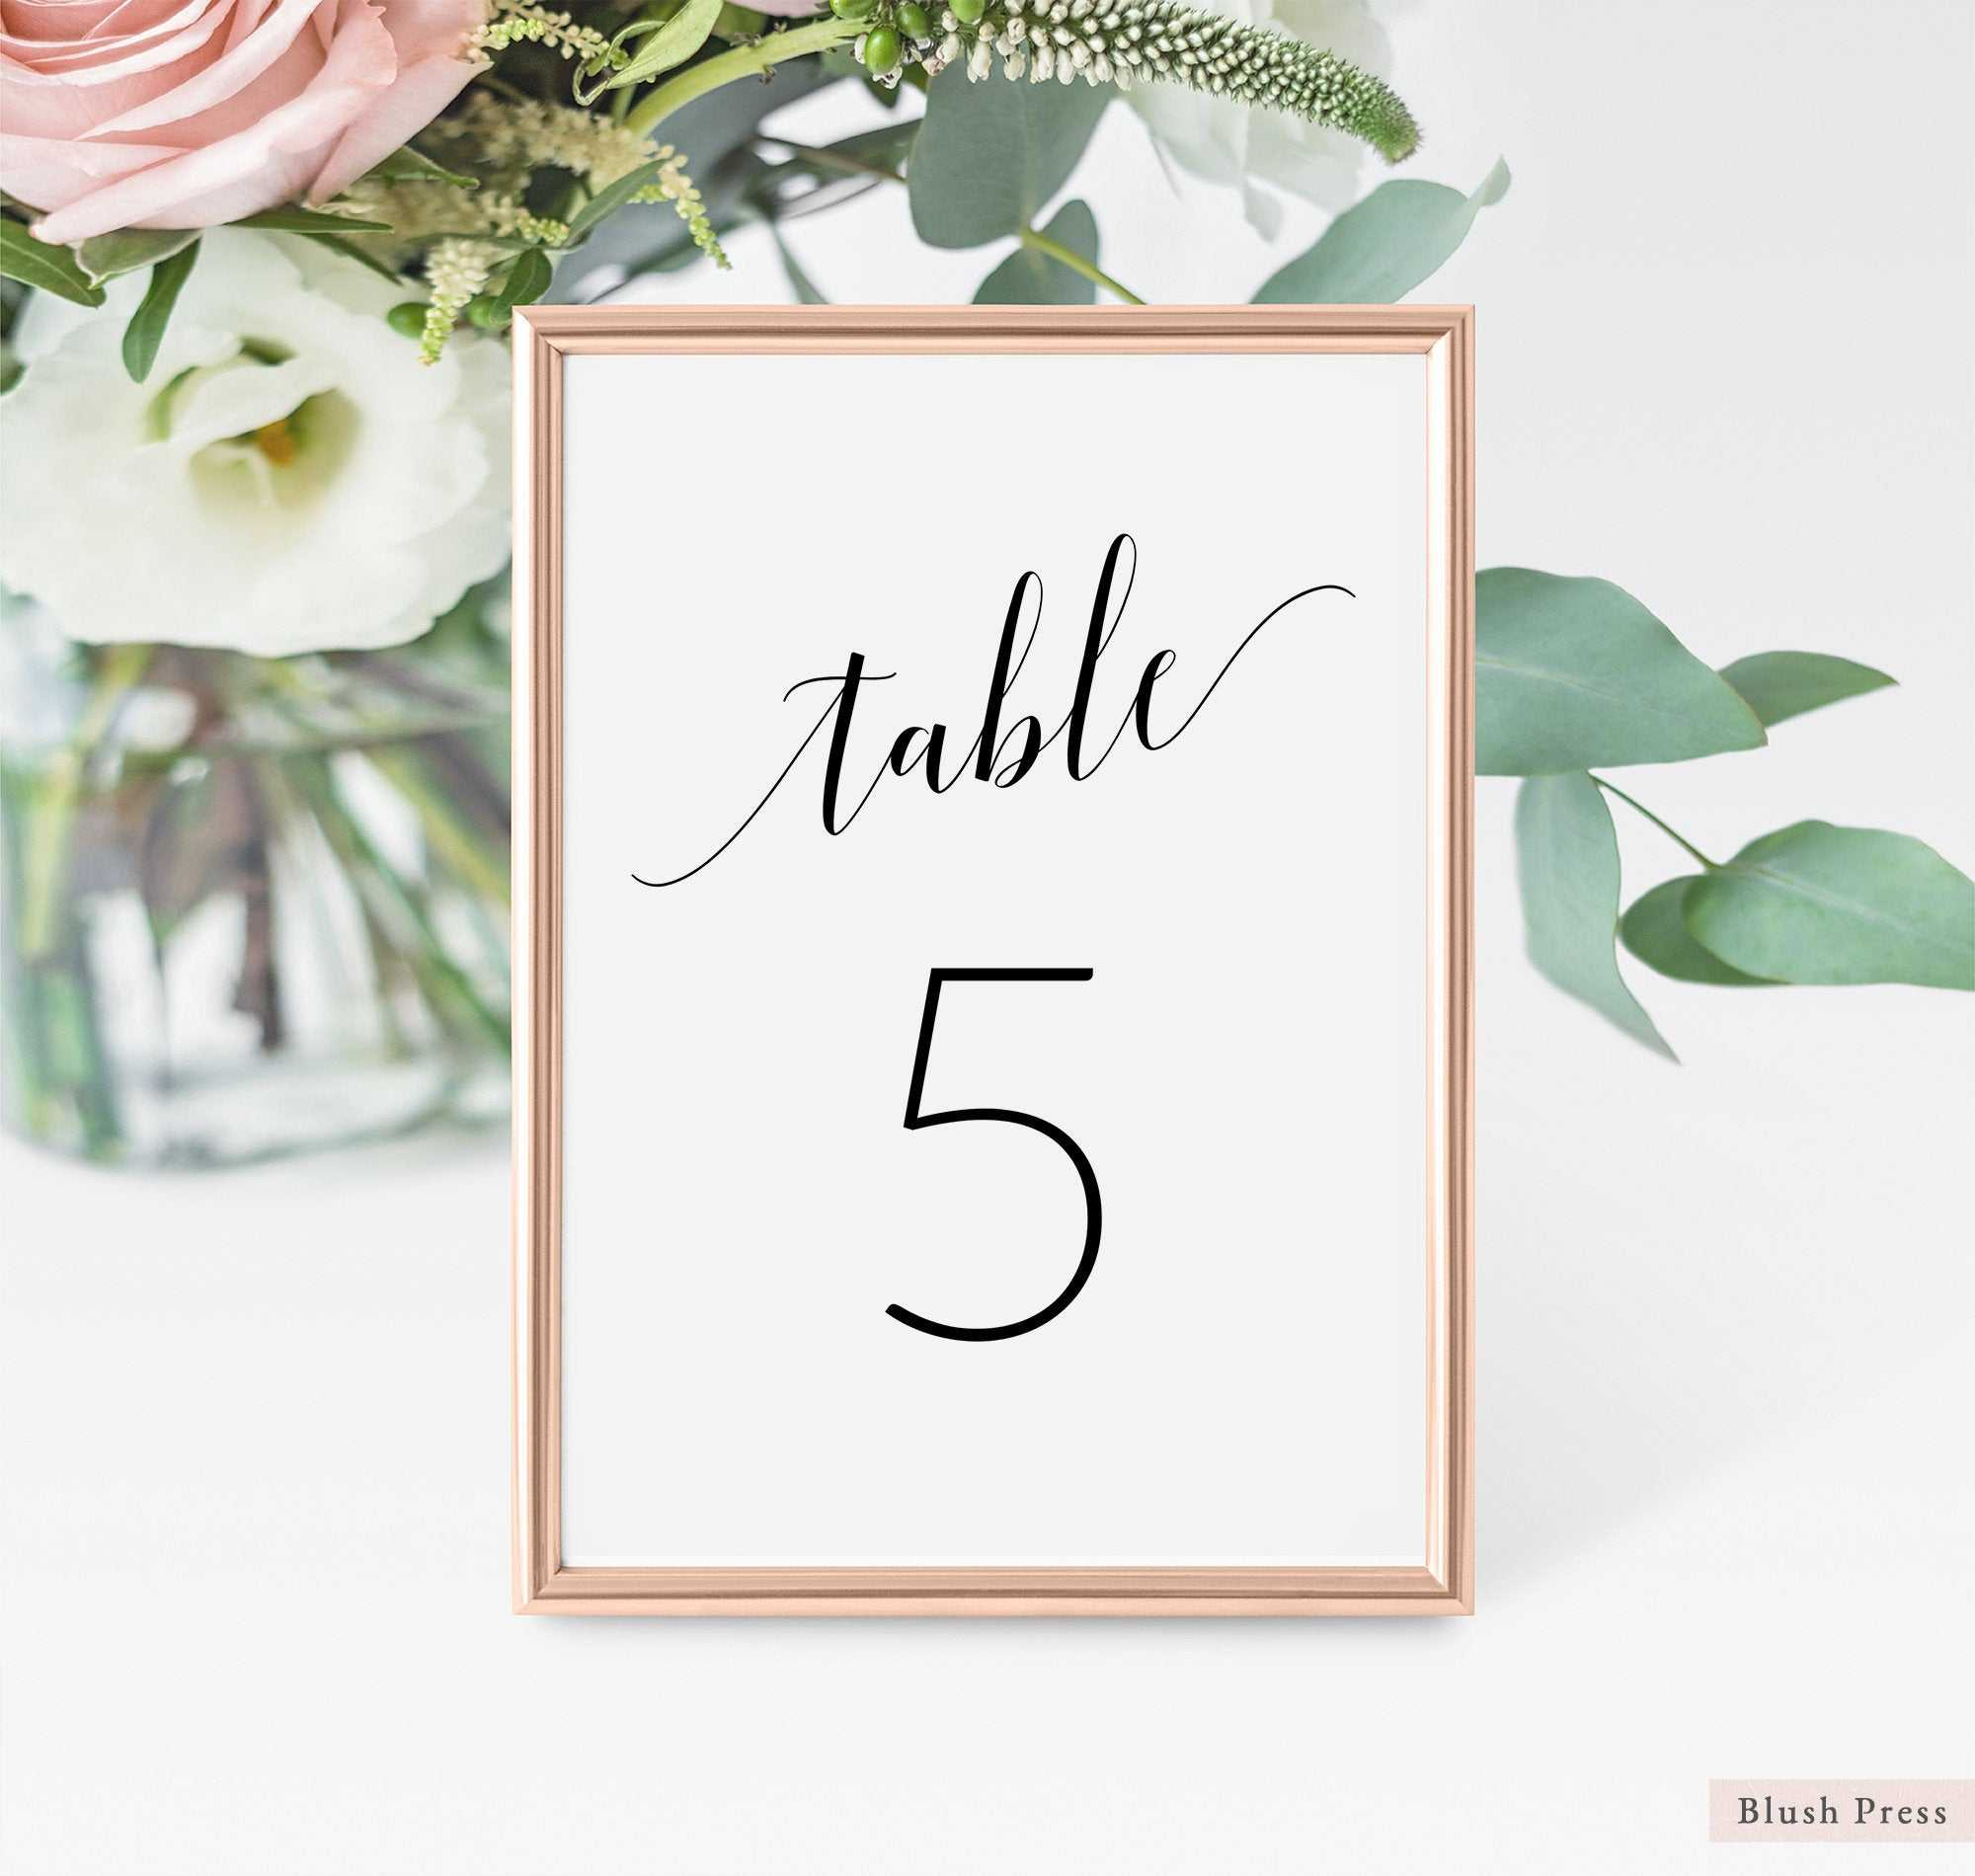 Wedding Table Number Cards Template, Printable Table Numbers Wedding, Table  Seating Card, Table Numbers Printable, Table Card Number Sav 062 Throughout Table Number Cards Template